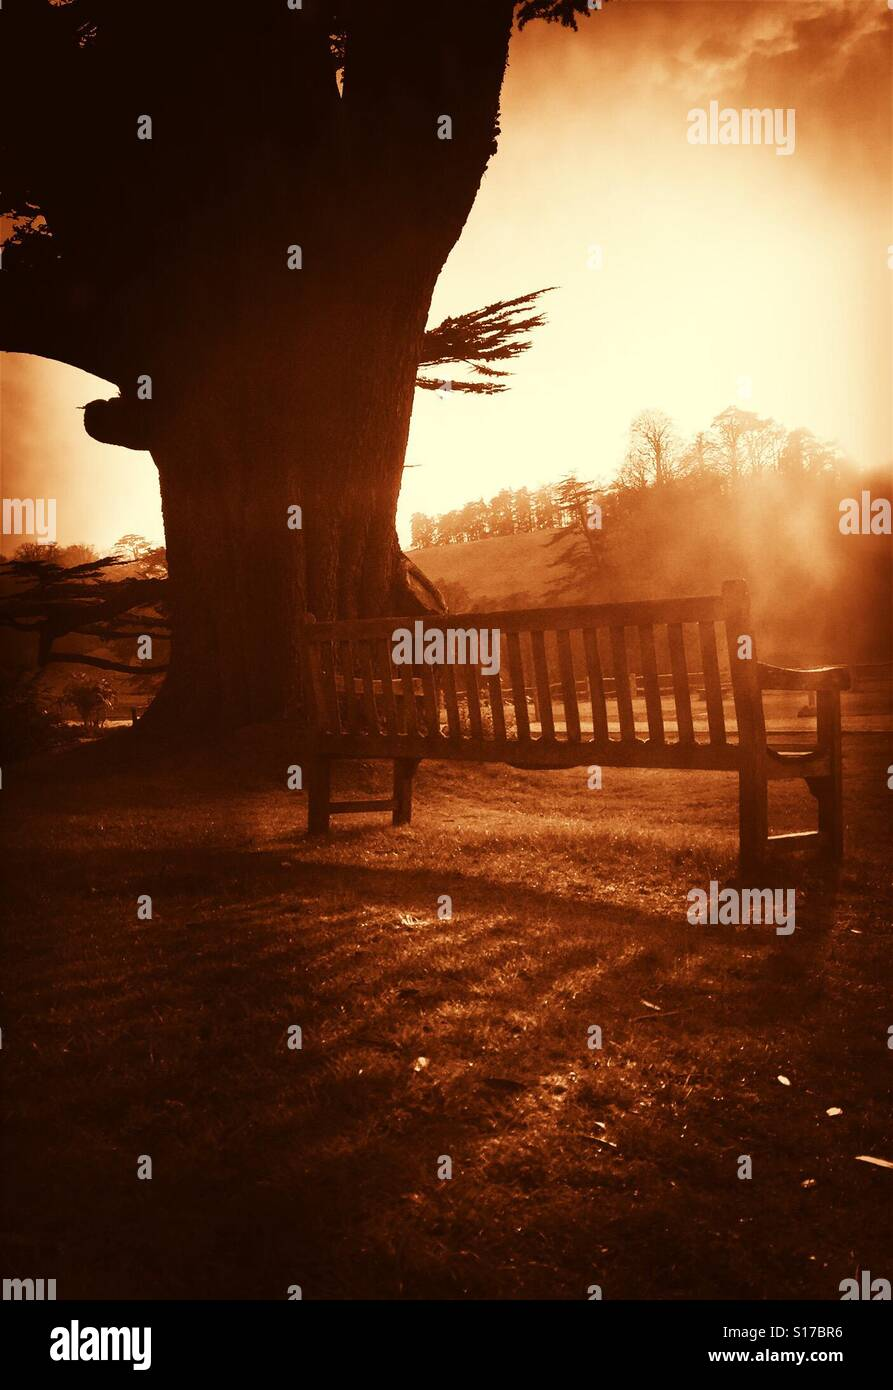 Bench by tree in low sun. - Stock Image